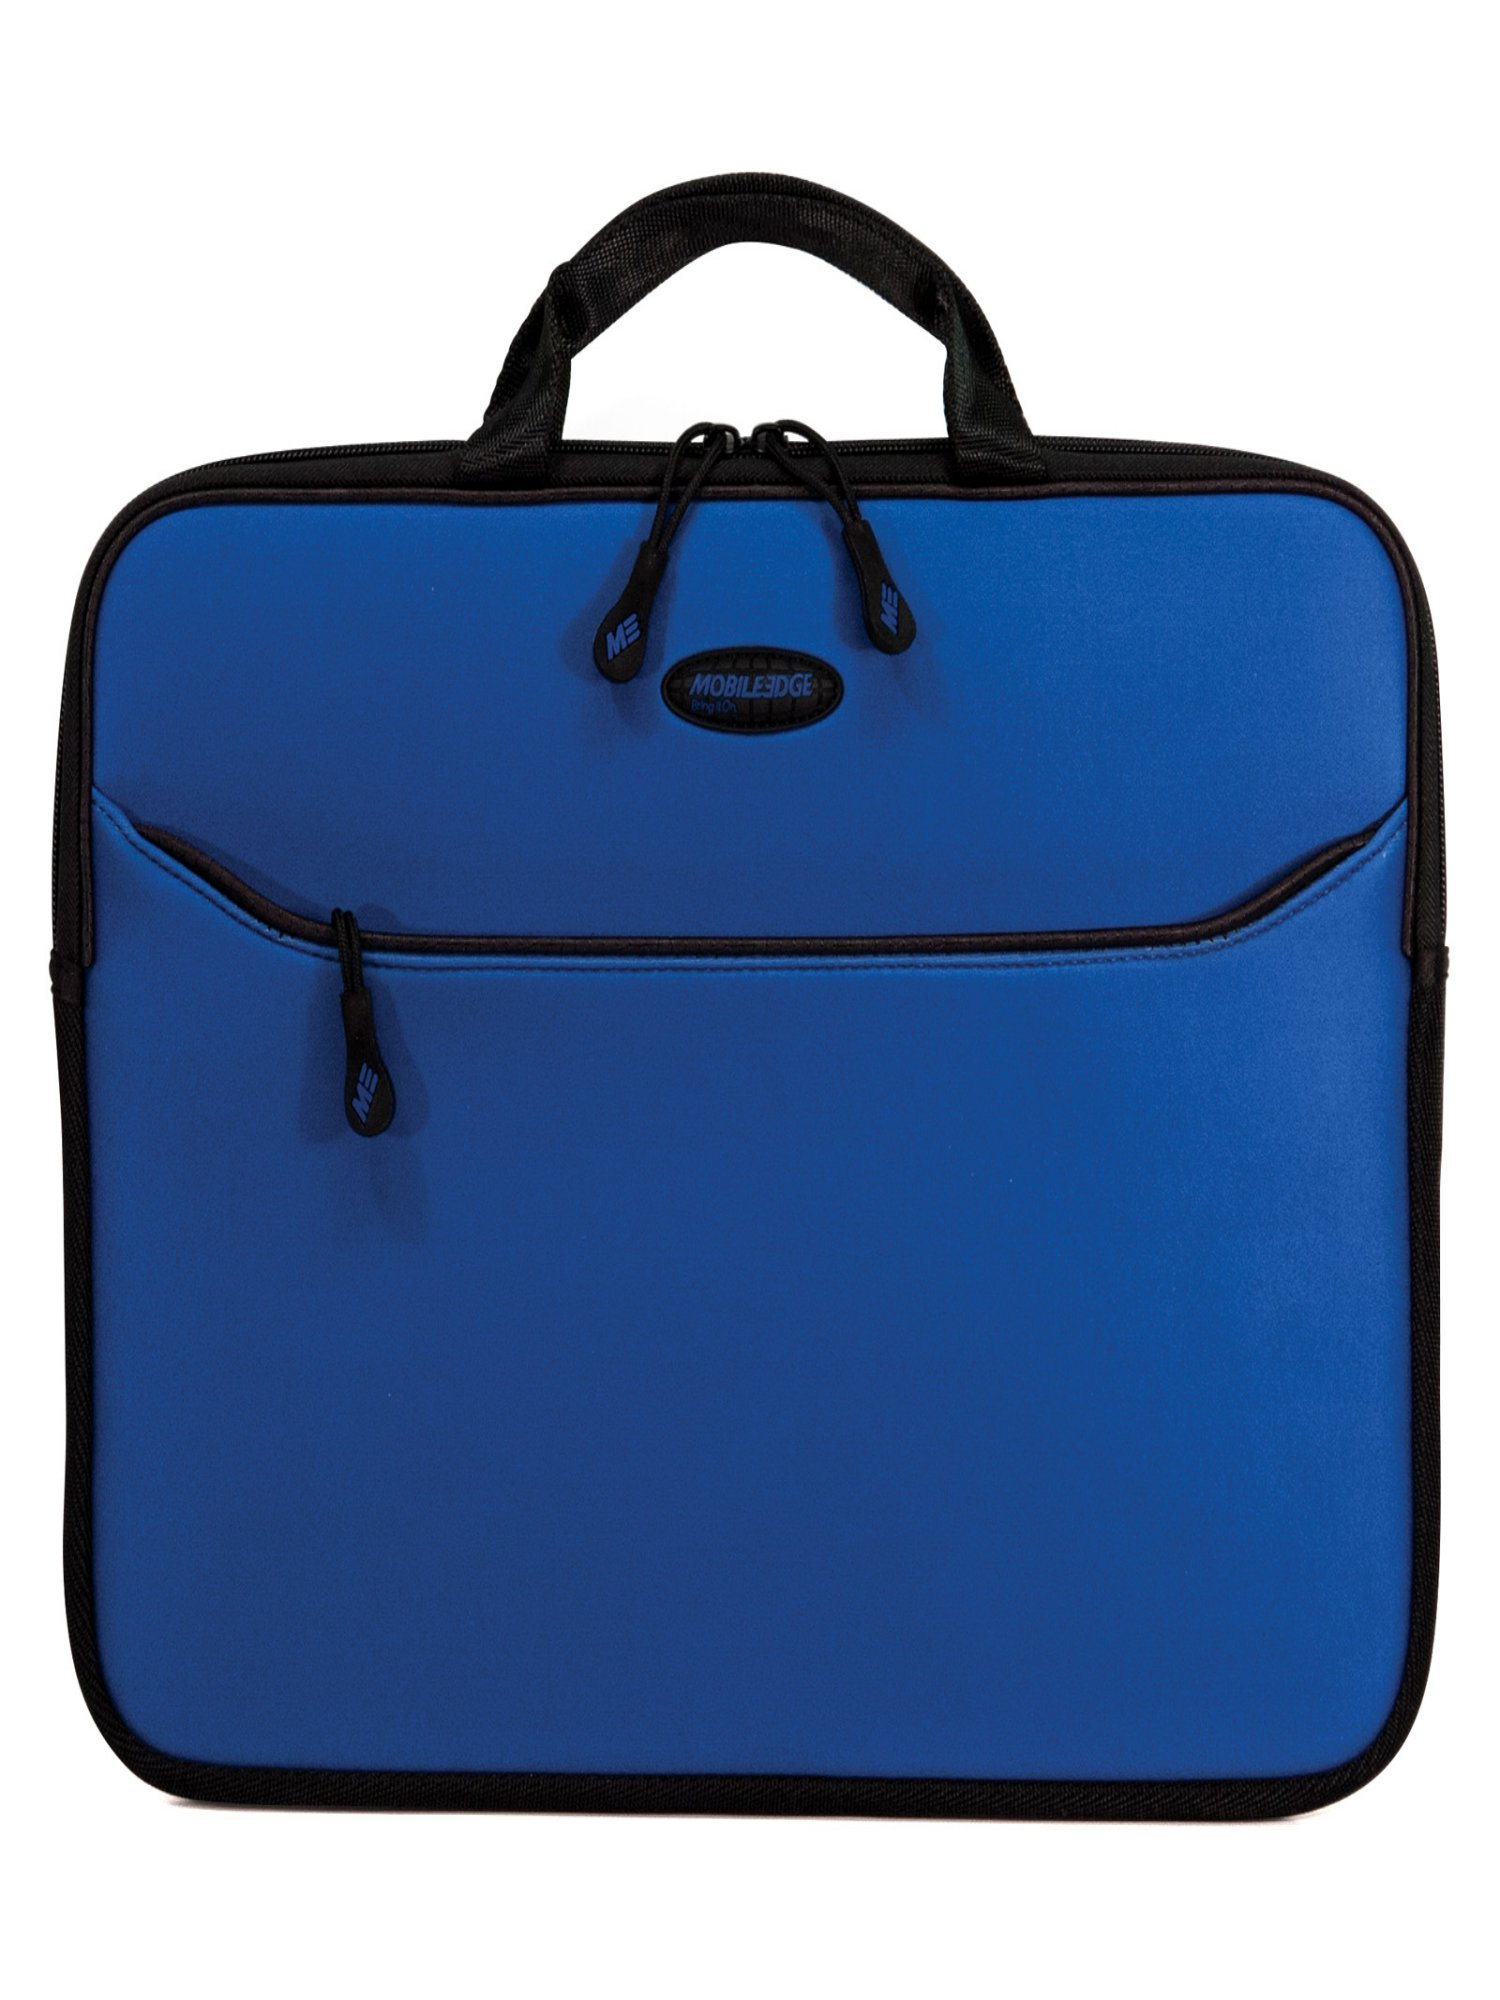 "Mobile Edge MESS5-16 16"" SlipSuit Laptop Sleeve, Royal Blue by Mobile Edge"